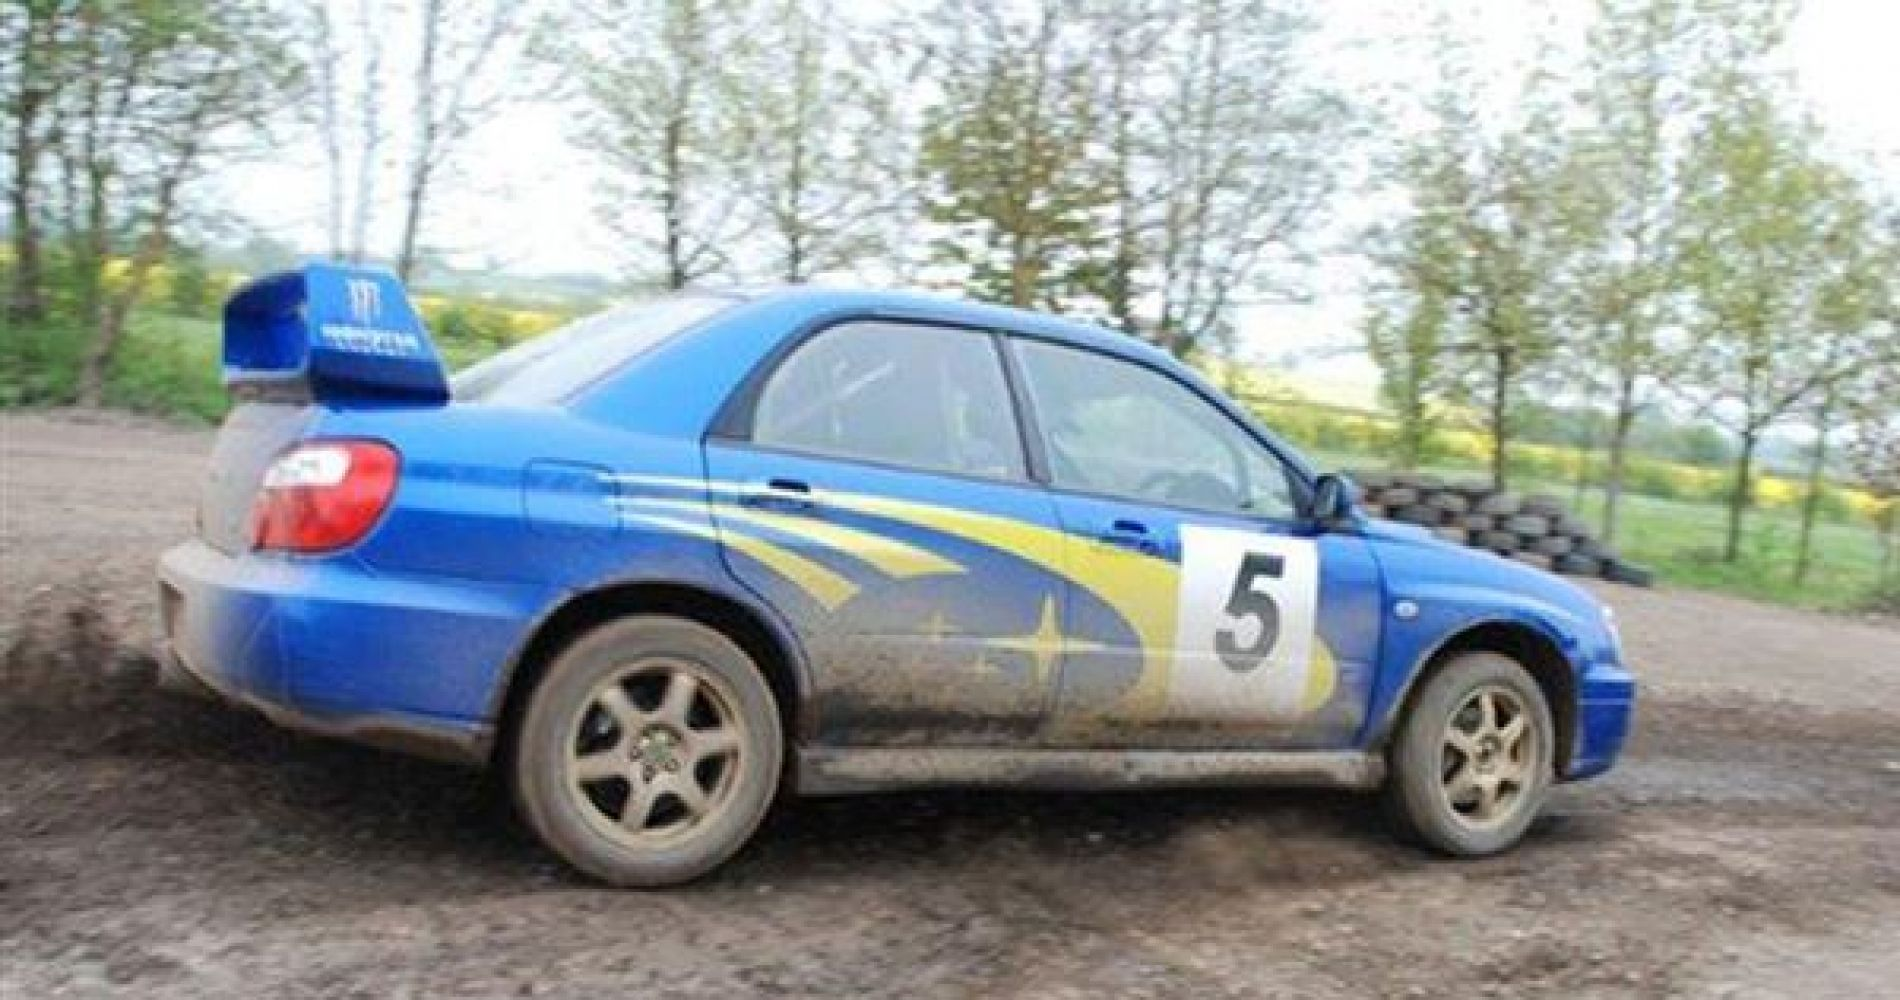 Acropolis Rally Day in United Kingdom